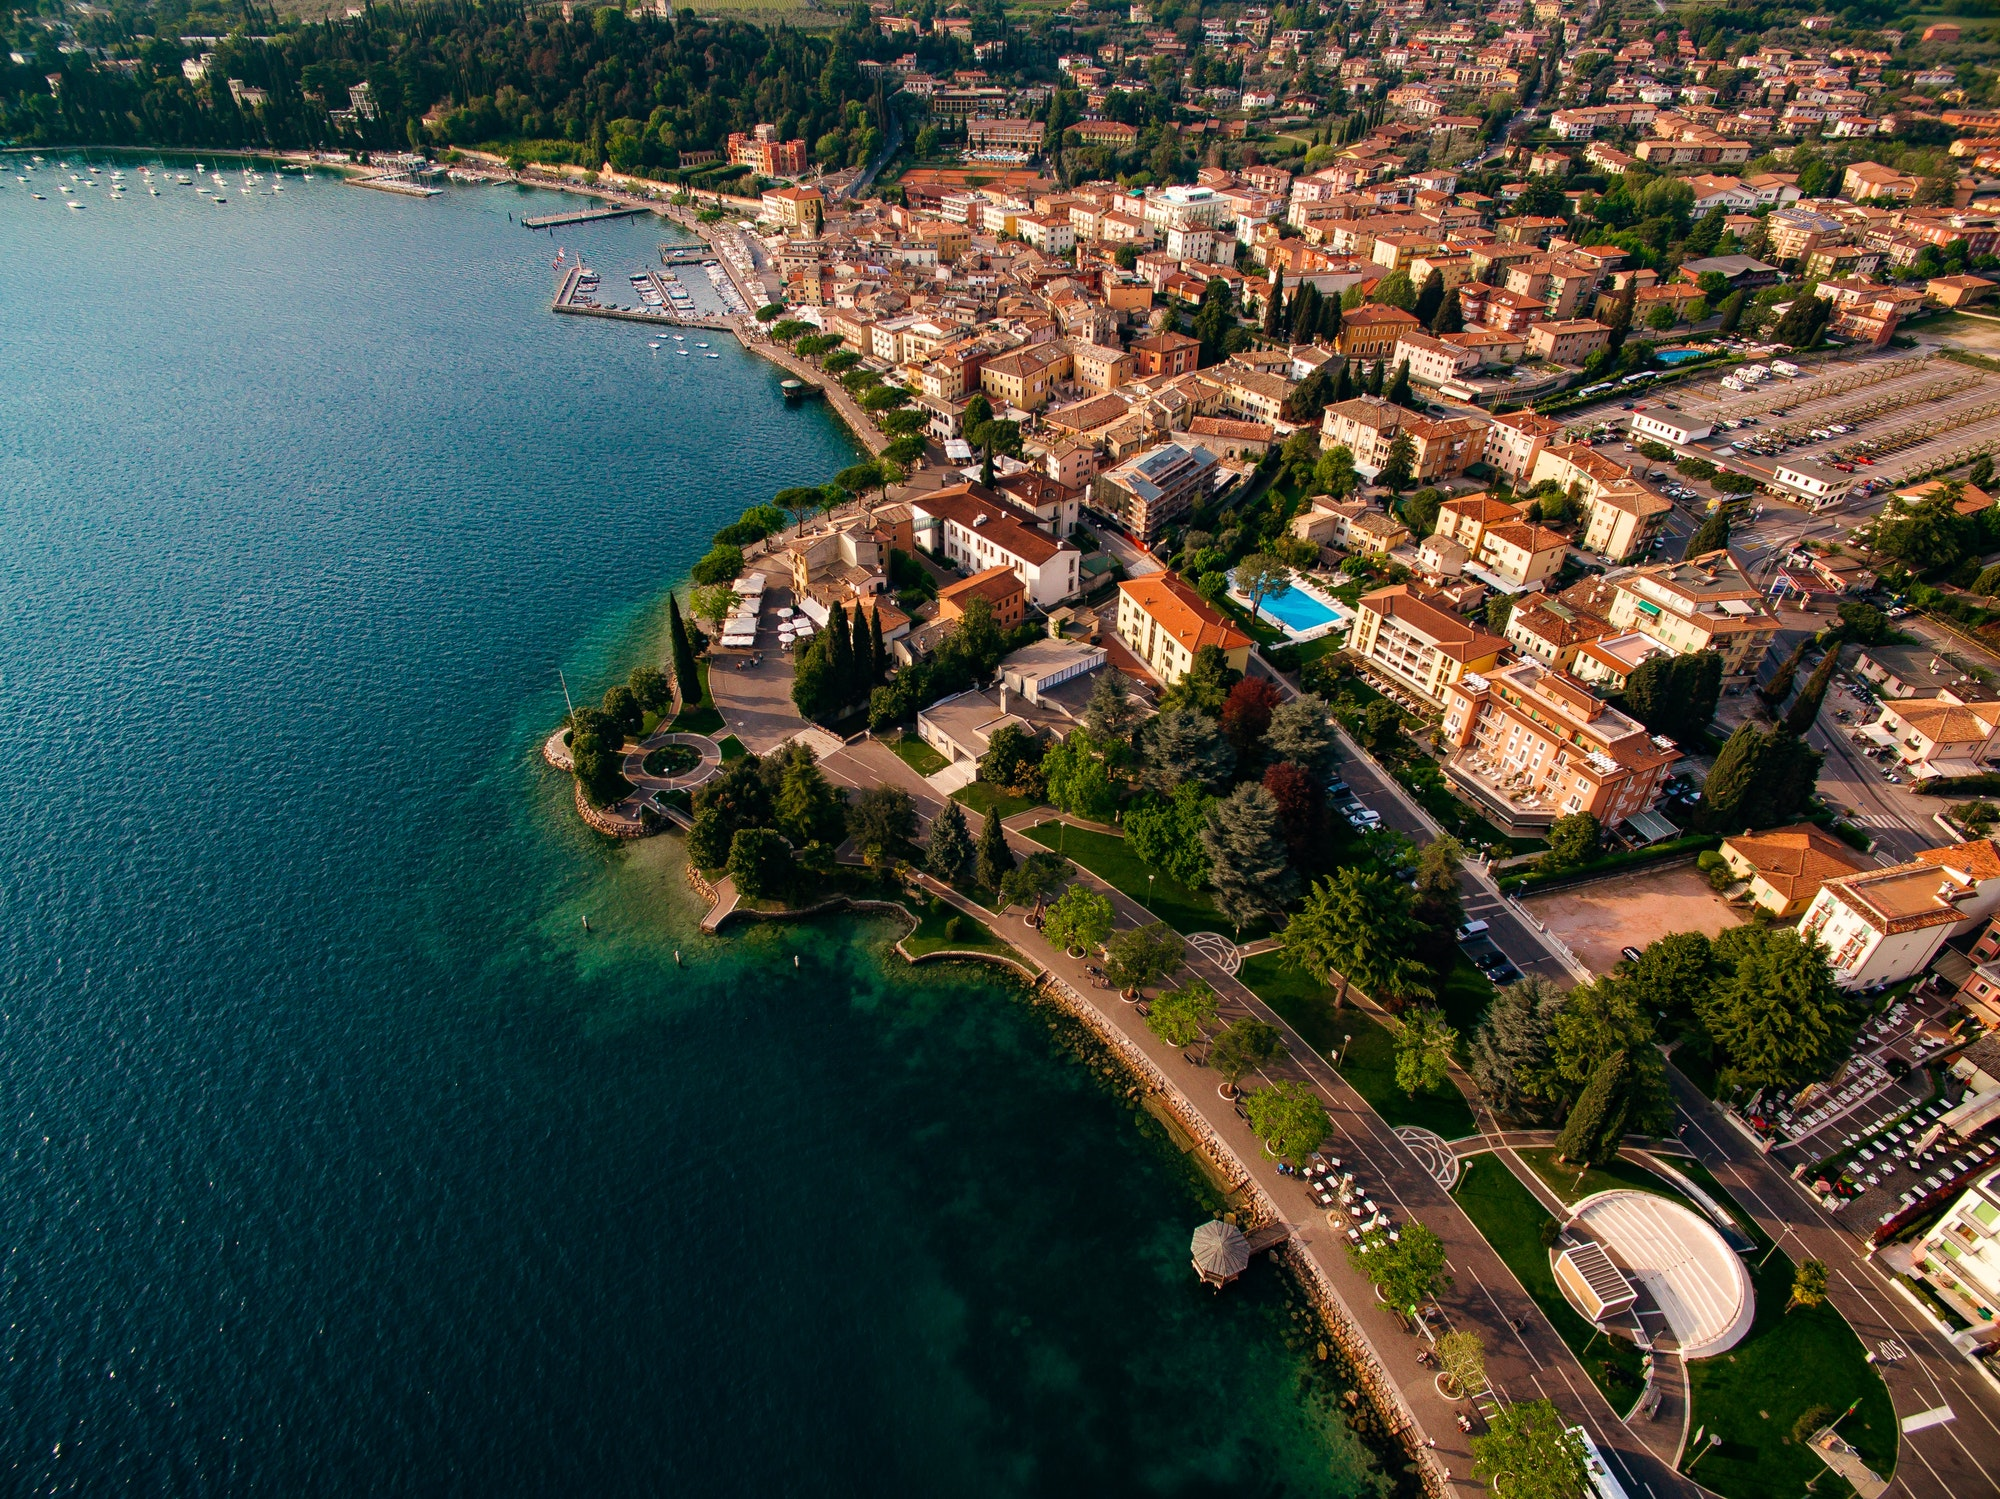 Aerial view of the coast of Lake Garda and a city in Italy.